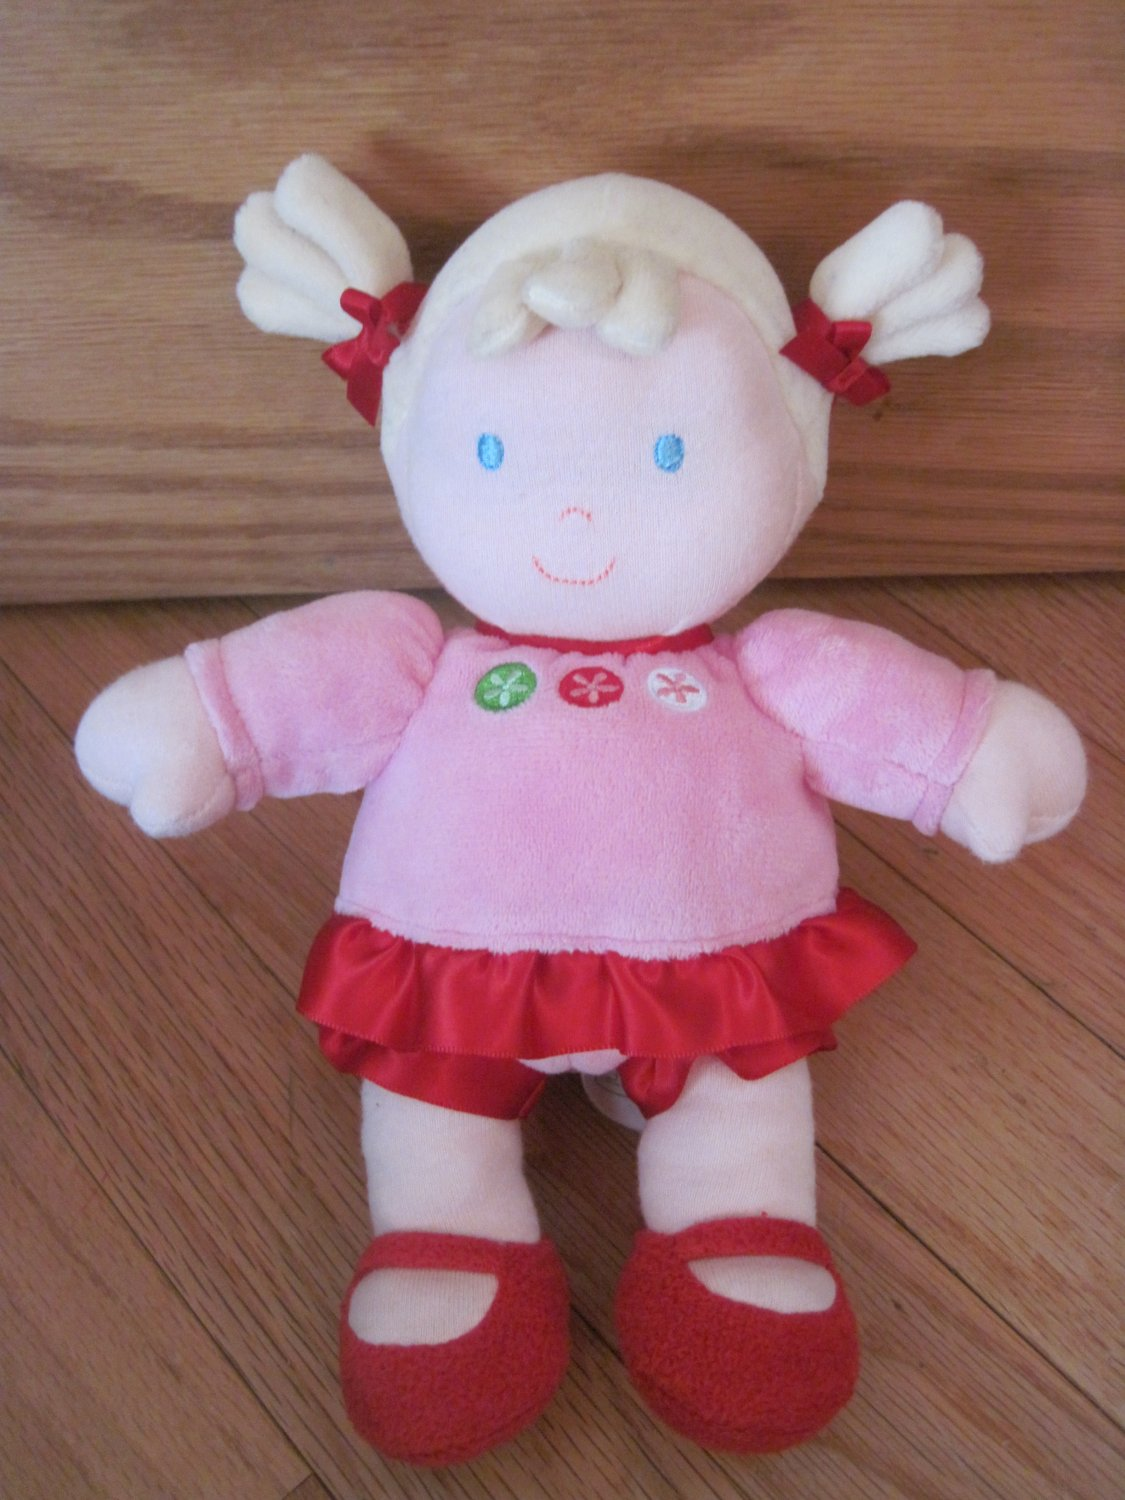 Carters Just One You Plush Baby Doll Blond Ponytails Pink